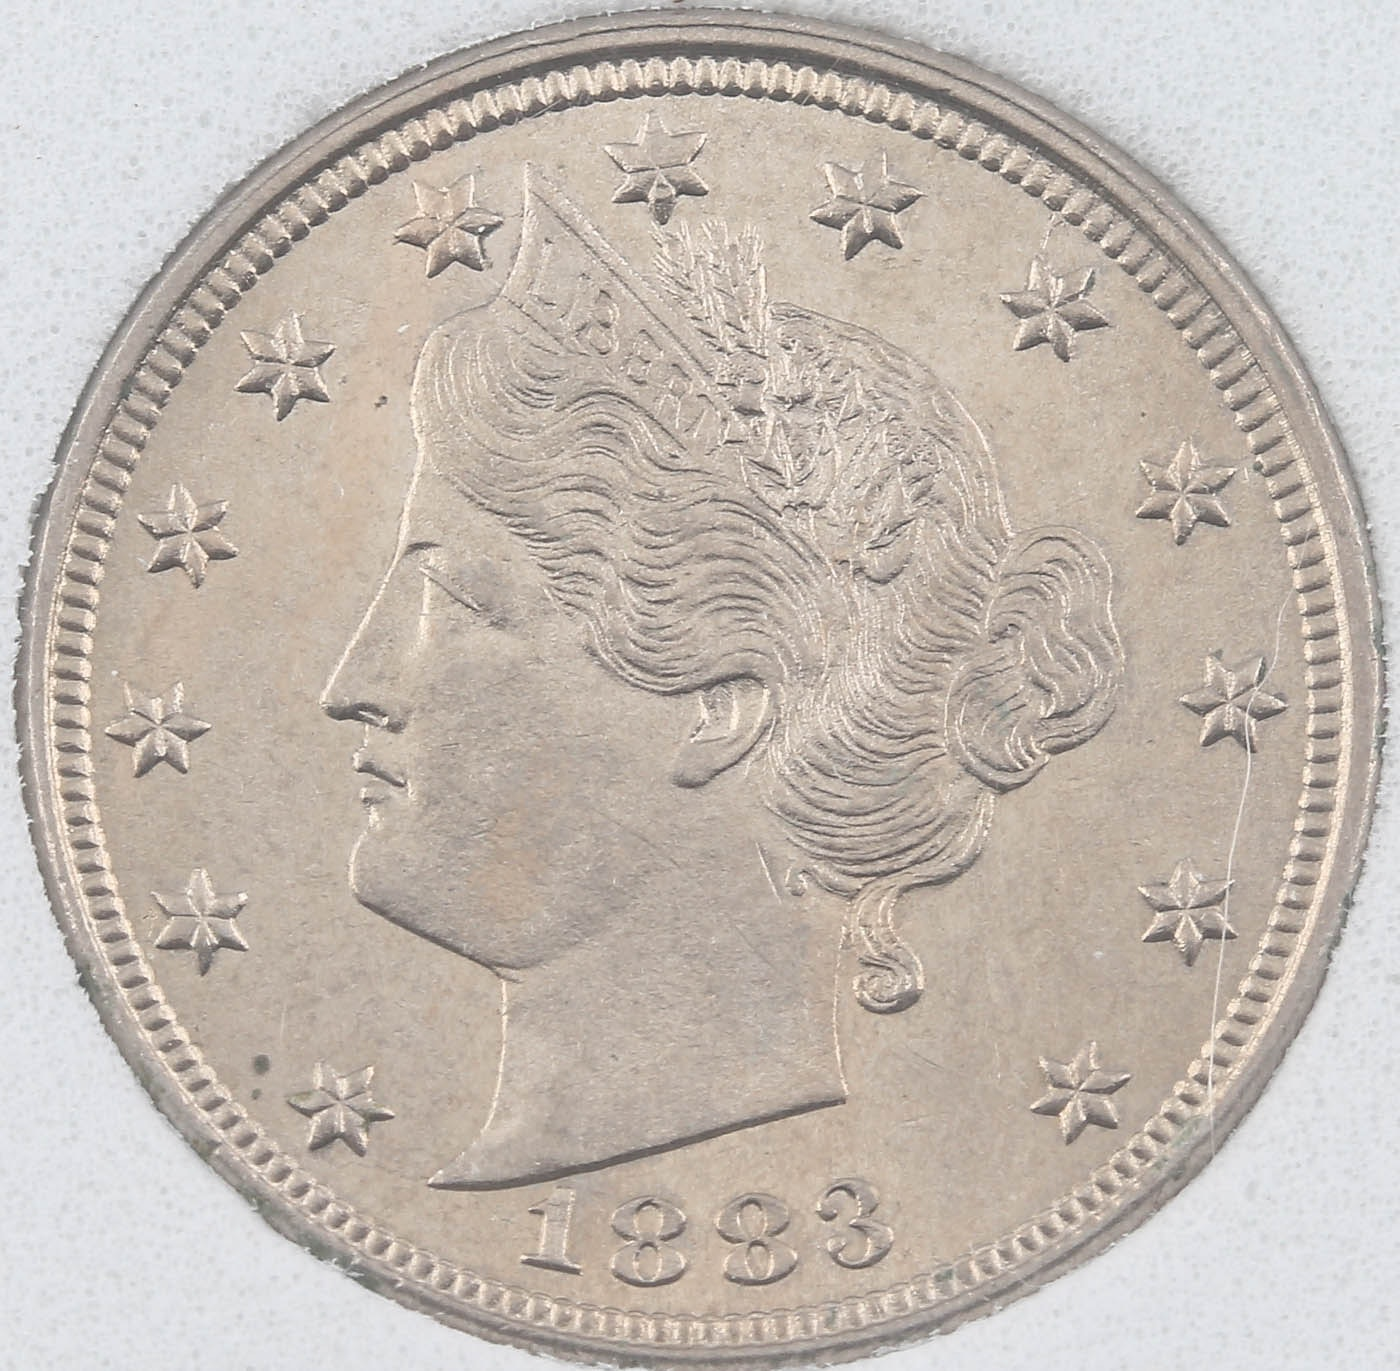 1883 Liberty Nickel Without Cents